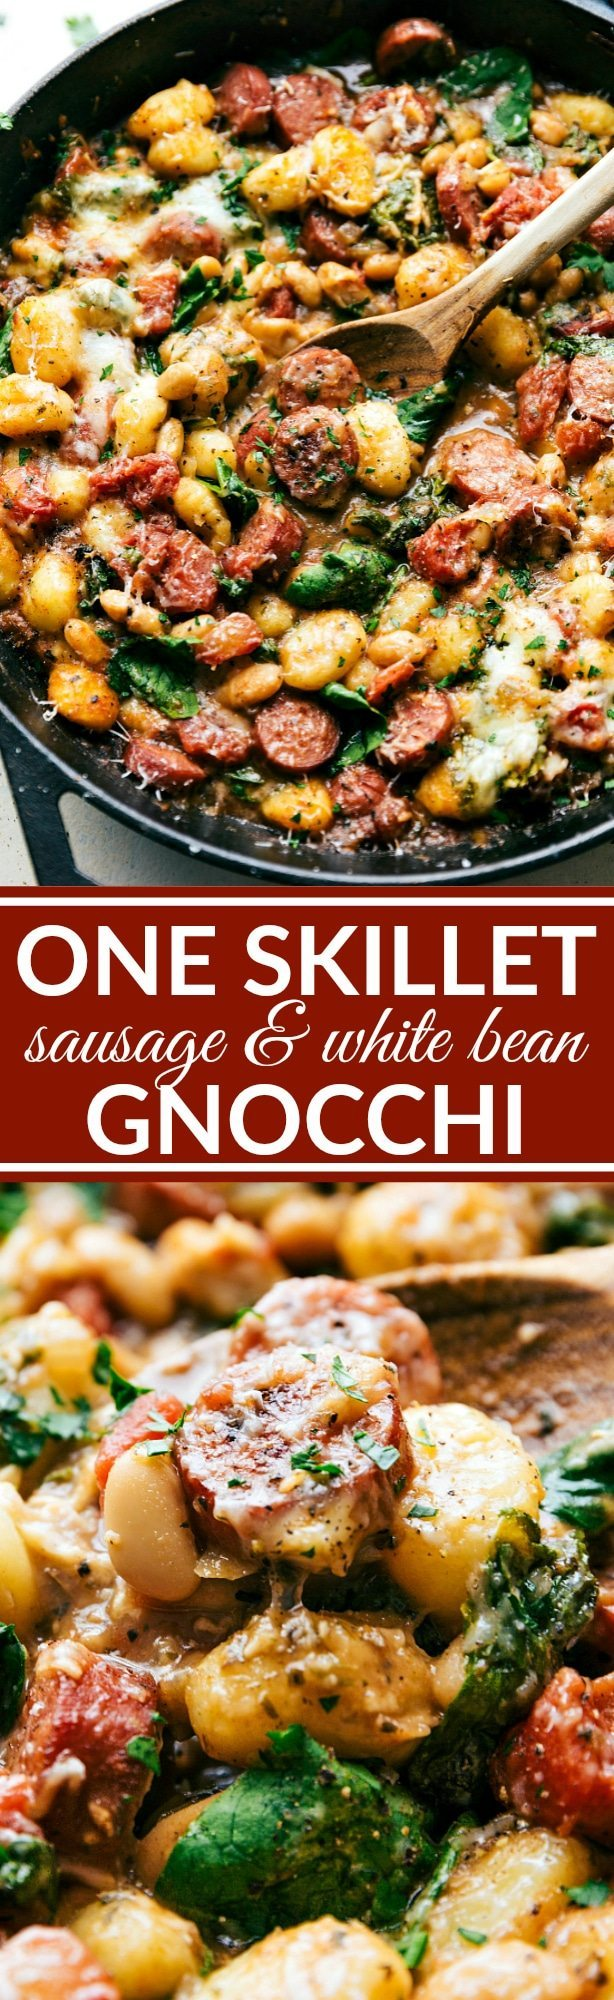 Only ONE skillet needed for a delicious 30 minute dinner recipe. Garlic, onion, sausage, white beans, gnocchi, tomatoes, and spinach plus spices and cheese mix together to make an incredible dinner in thirty minutes. Recipe via chelseasmessyapron.com